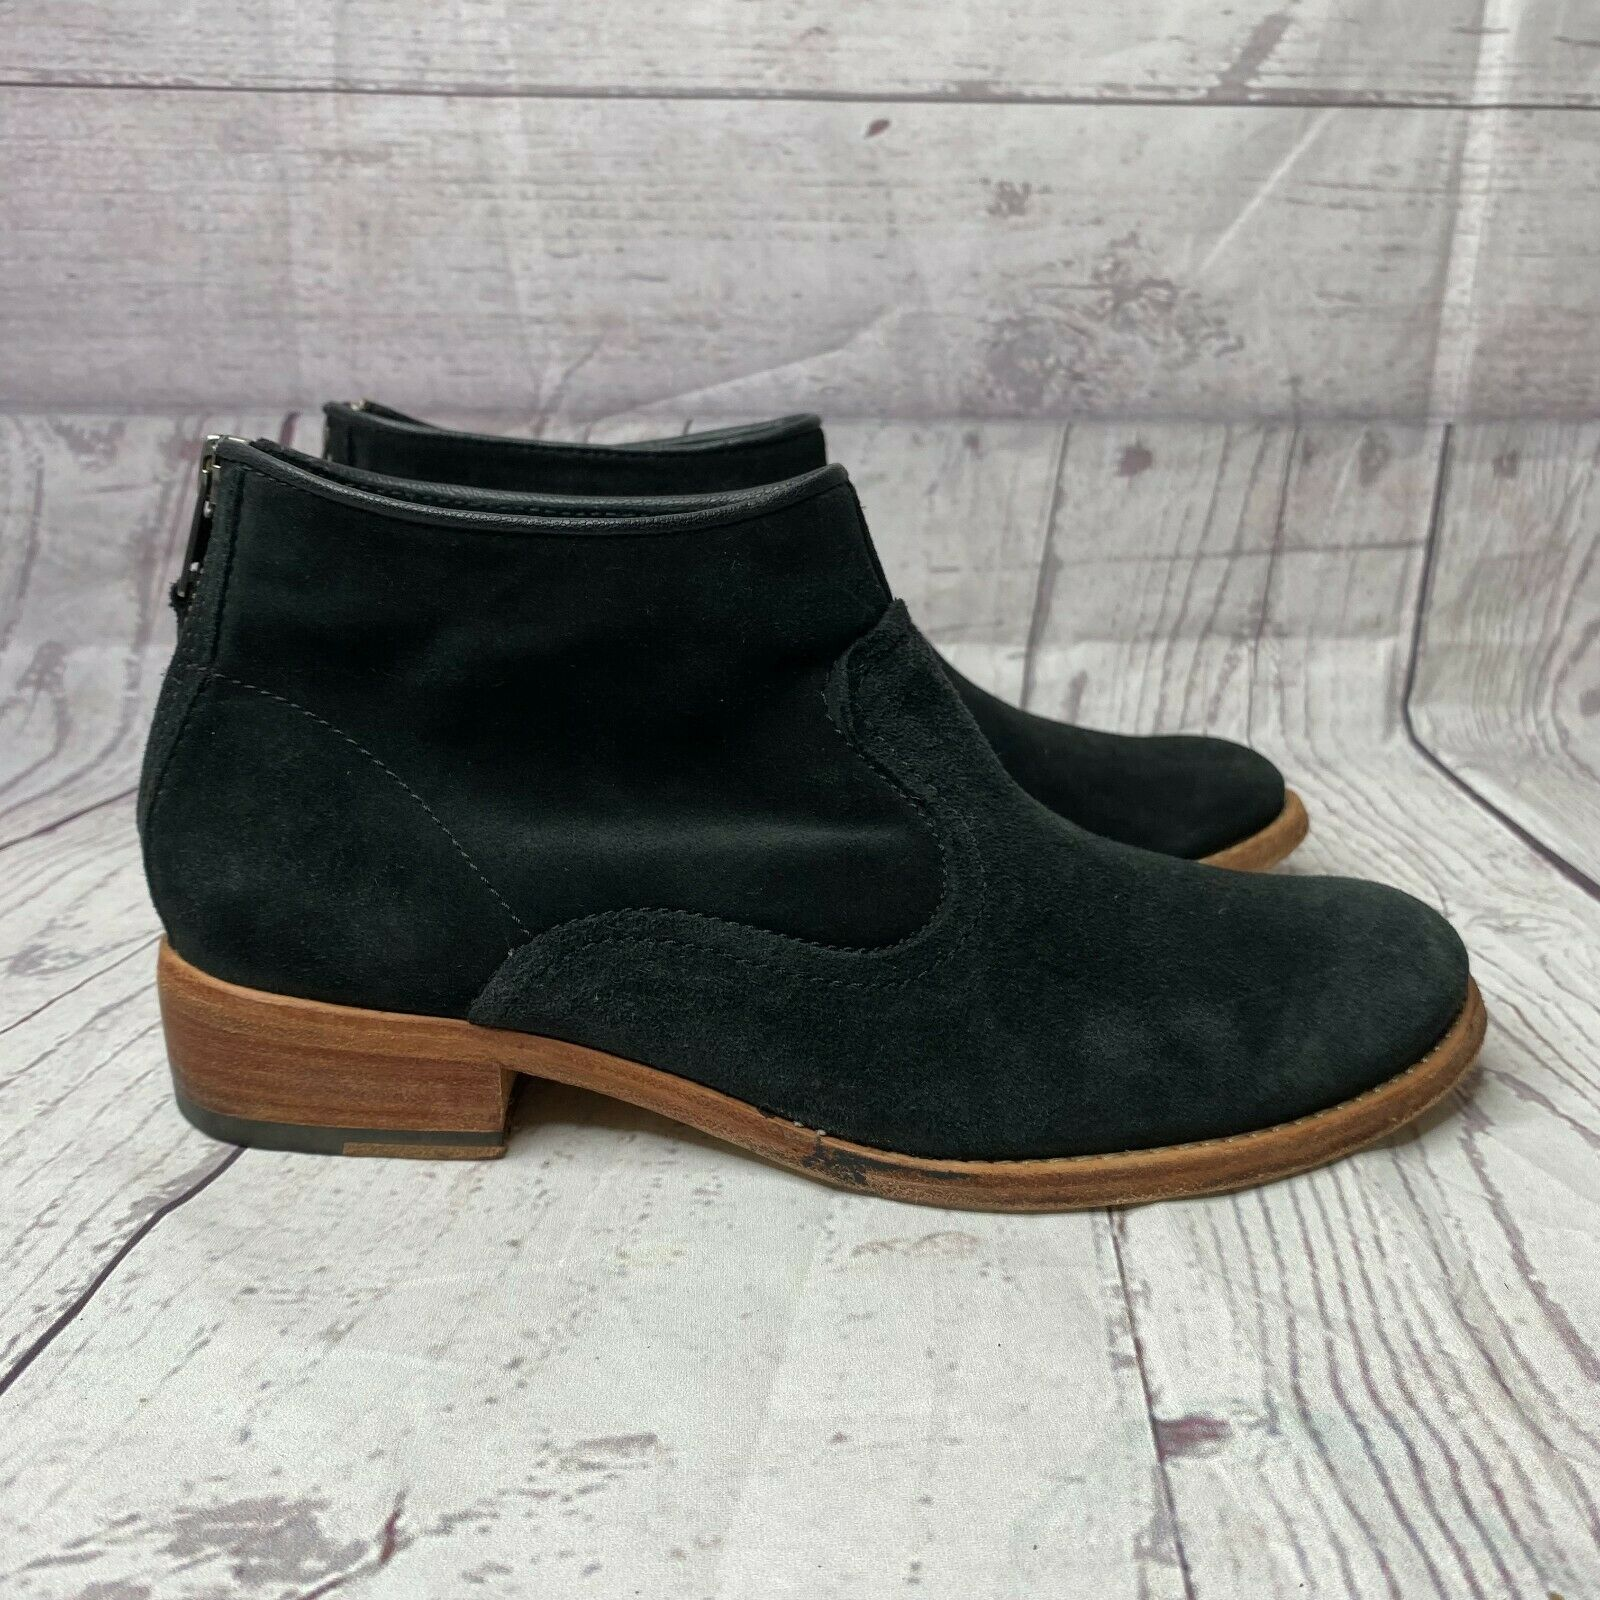 Johnston & Murphy Womens Black Suede Round Toe Zip Ankle Booties Size 7.5